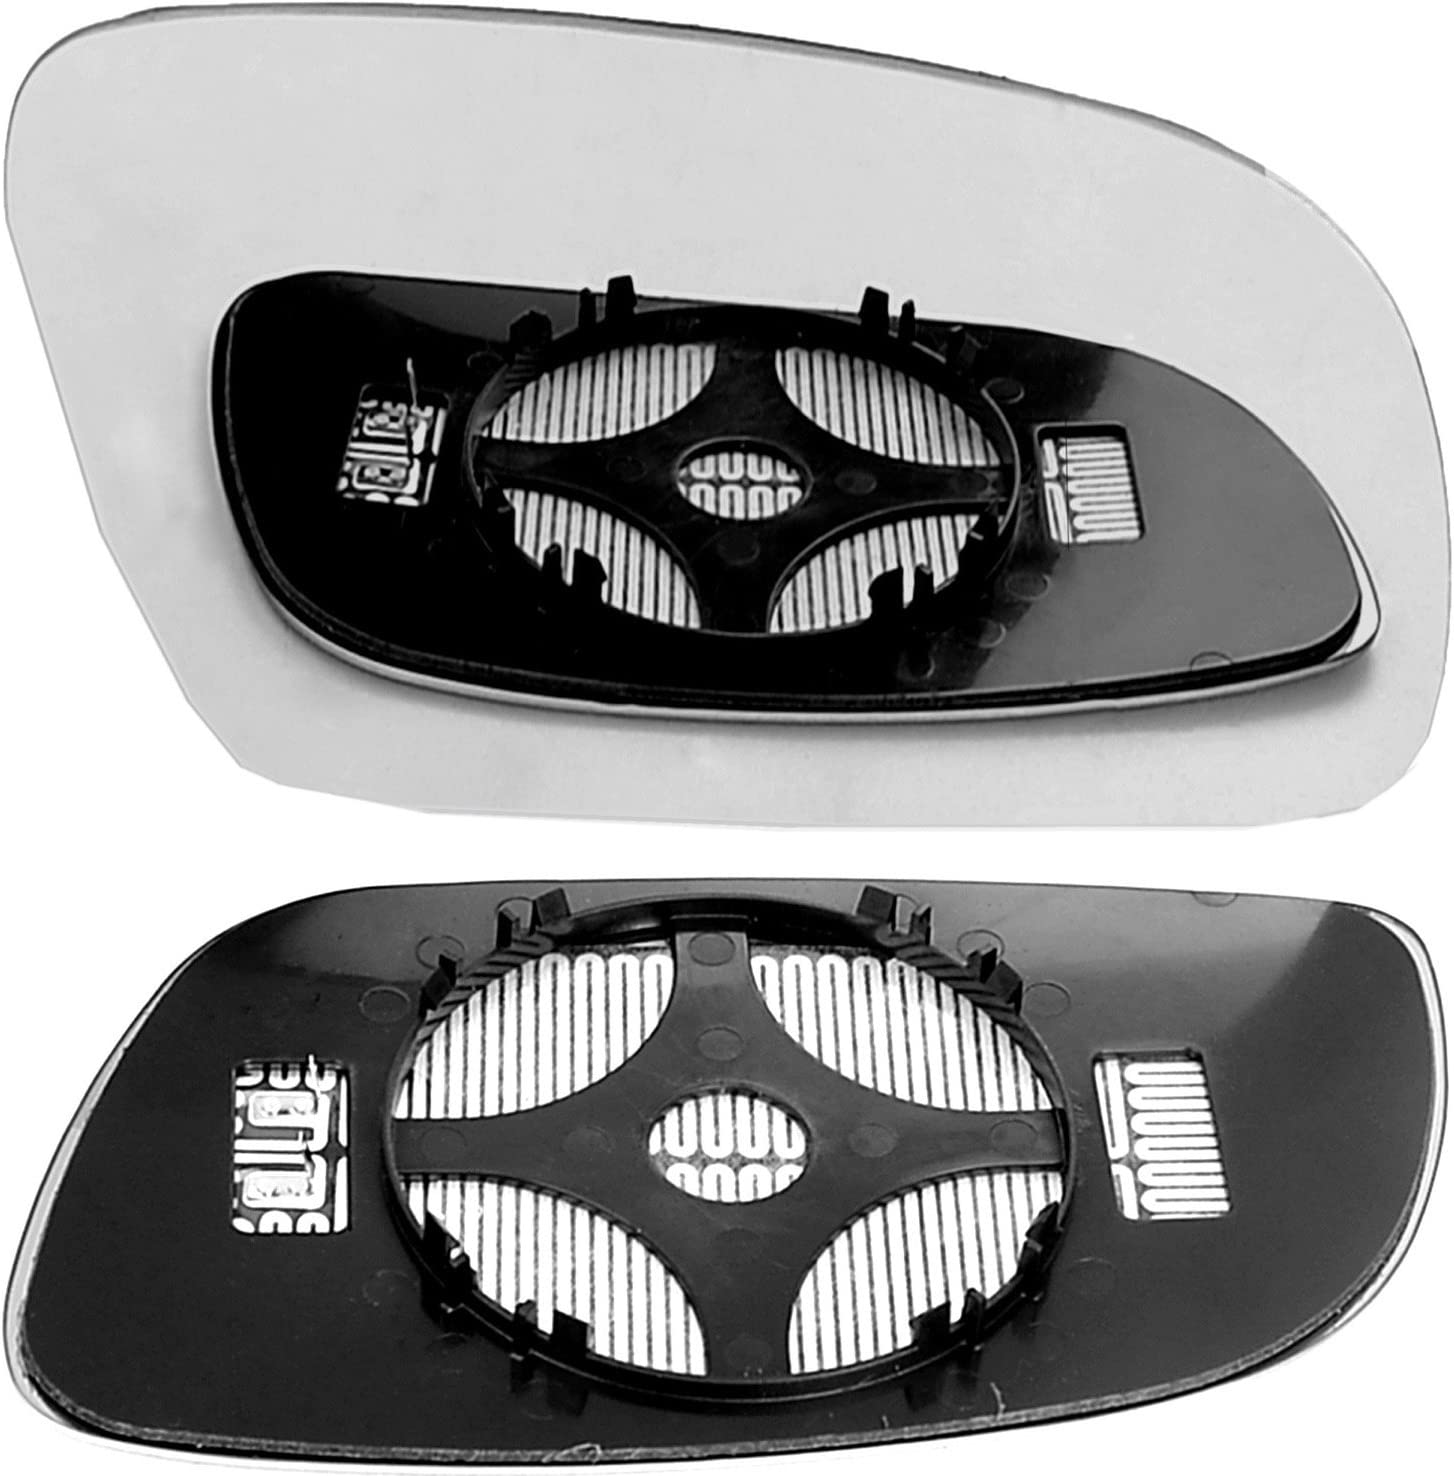 Heated Right Driver Side Wing Door Clip on Mirror Glass Less4Spares I029-RH/_tou/_c clip